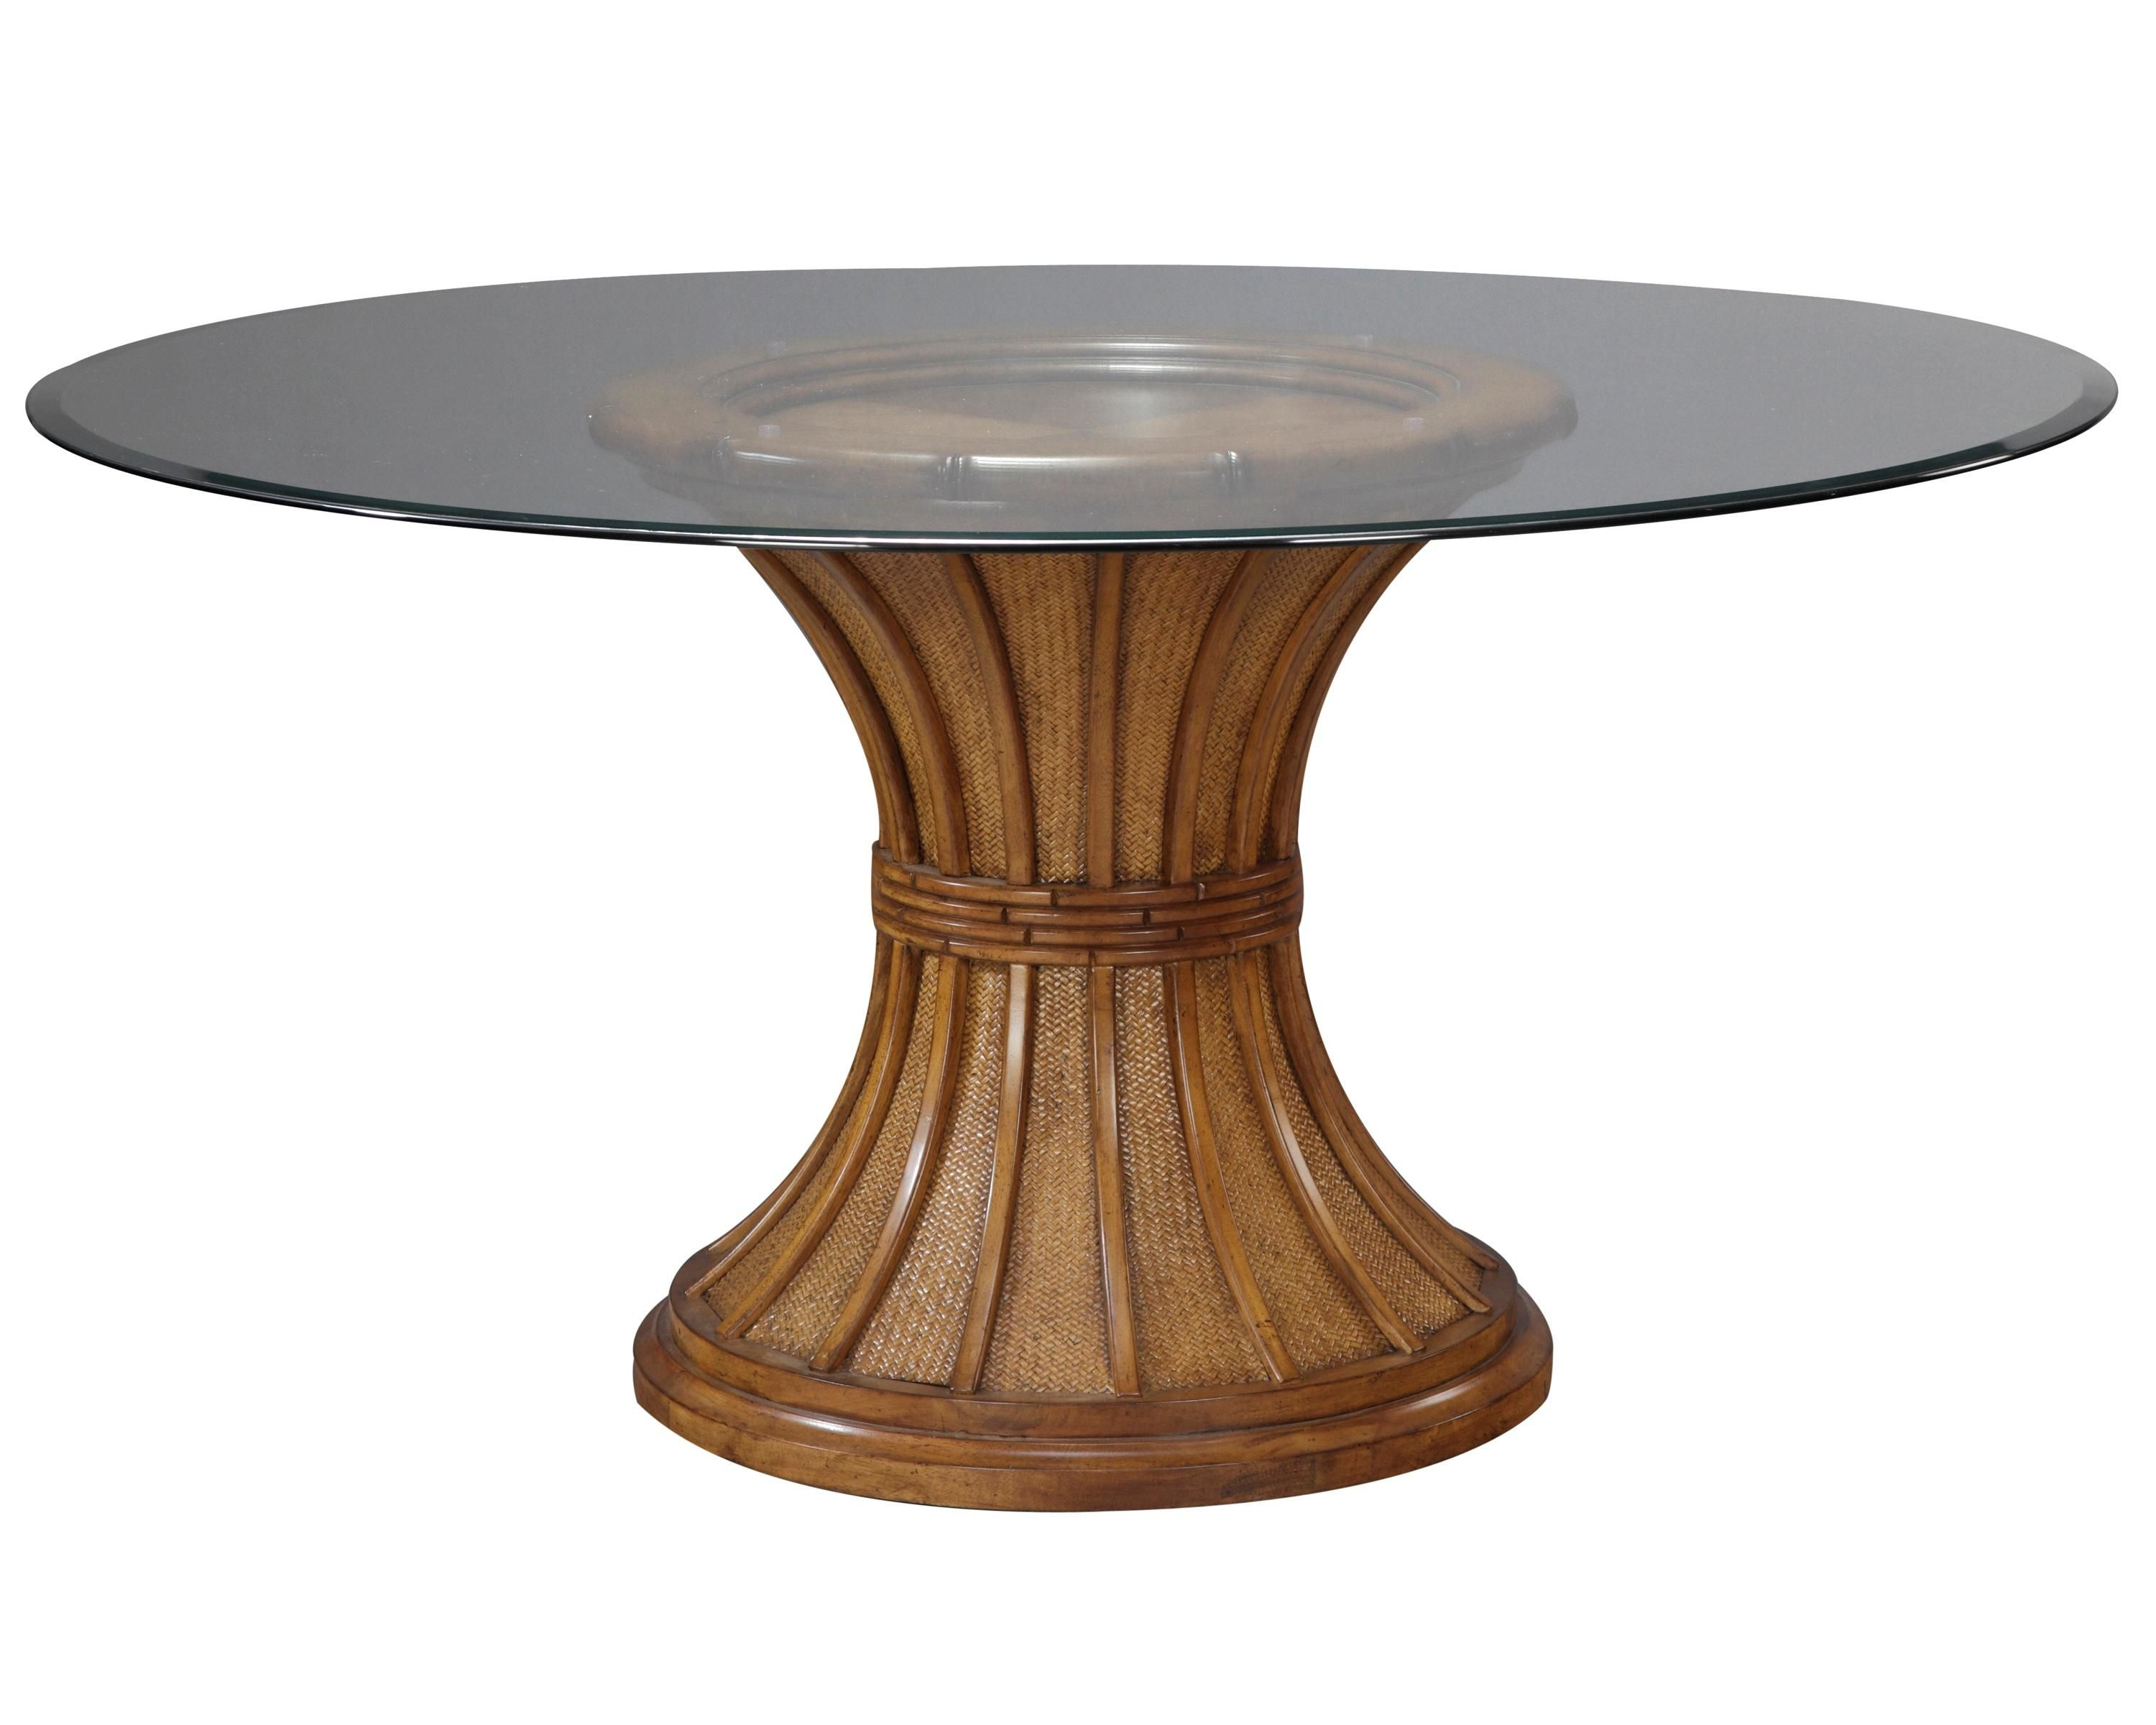 extraordinary glass top dining table with rounded brown wooden